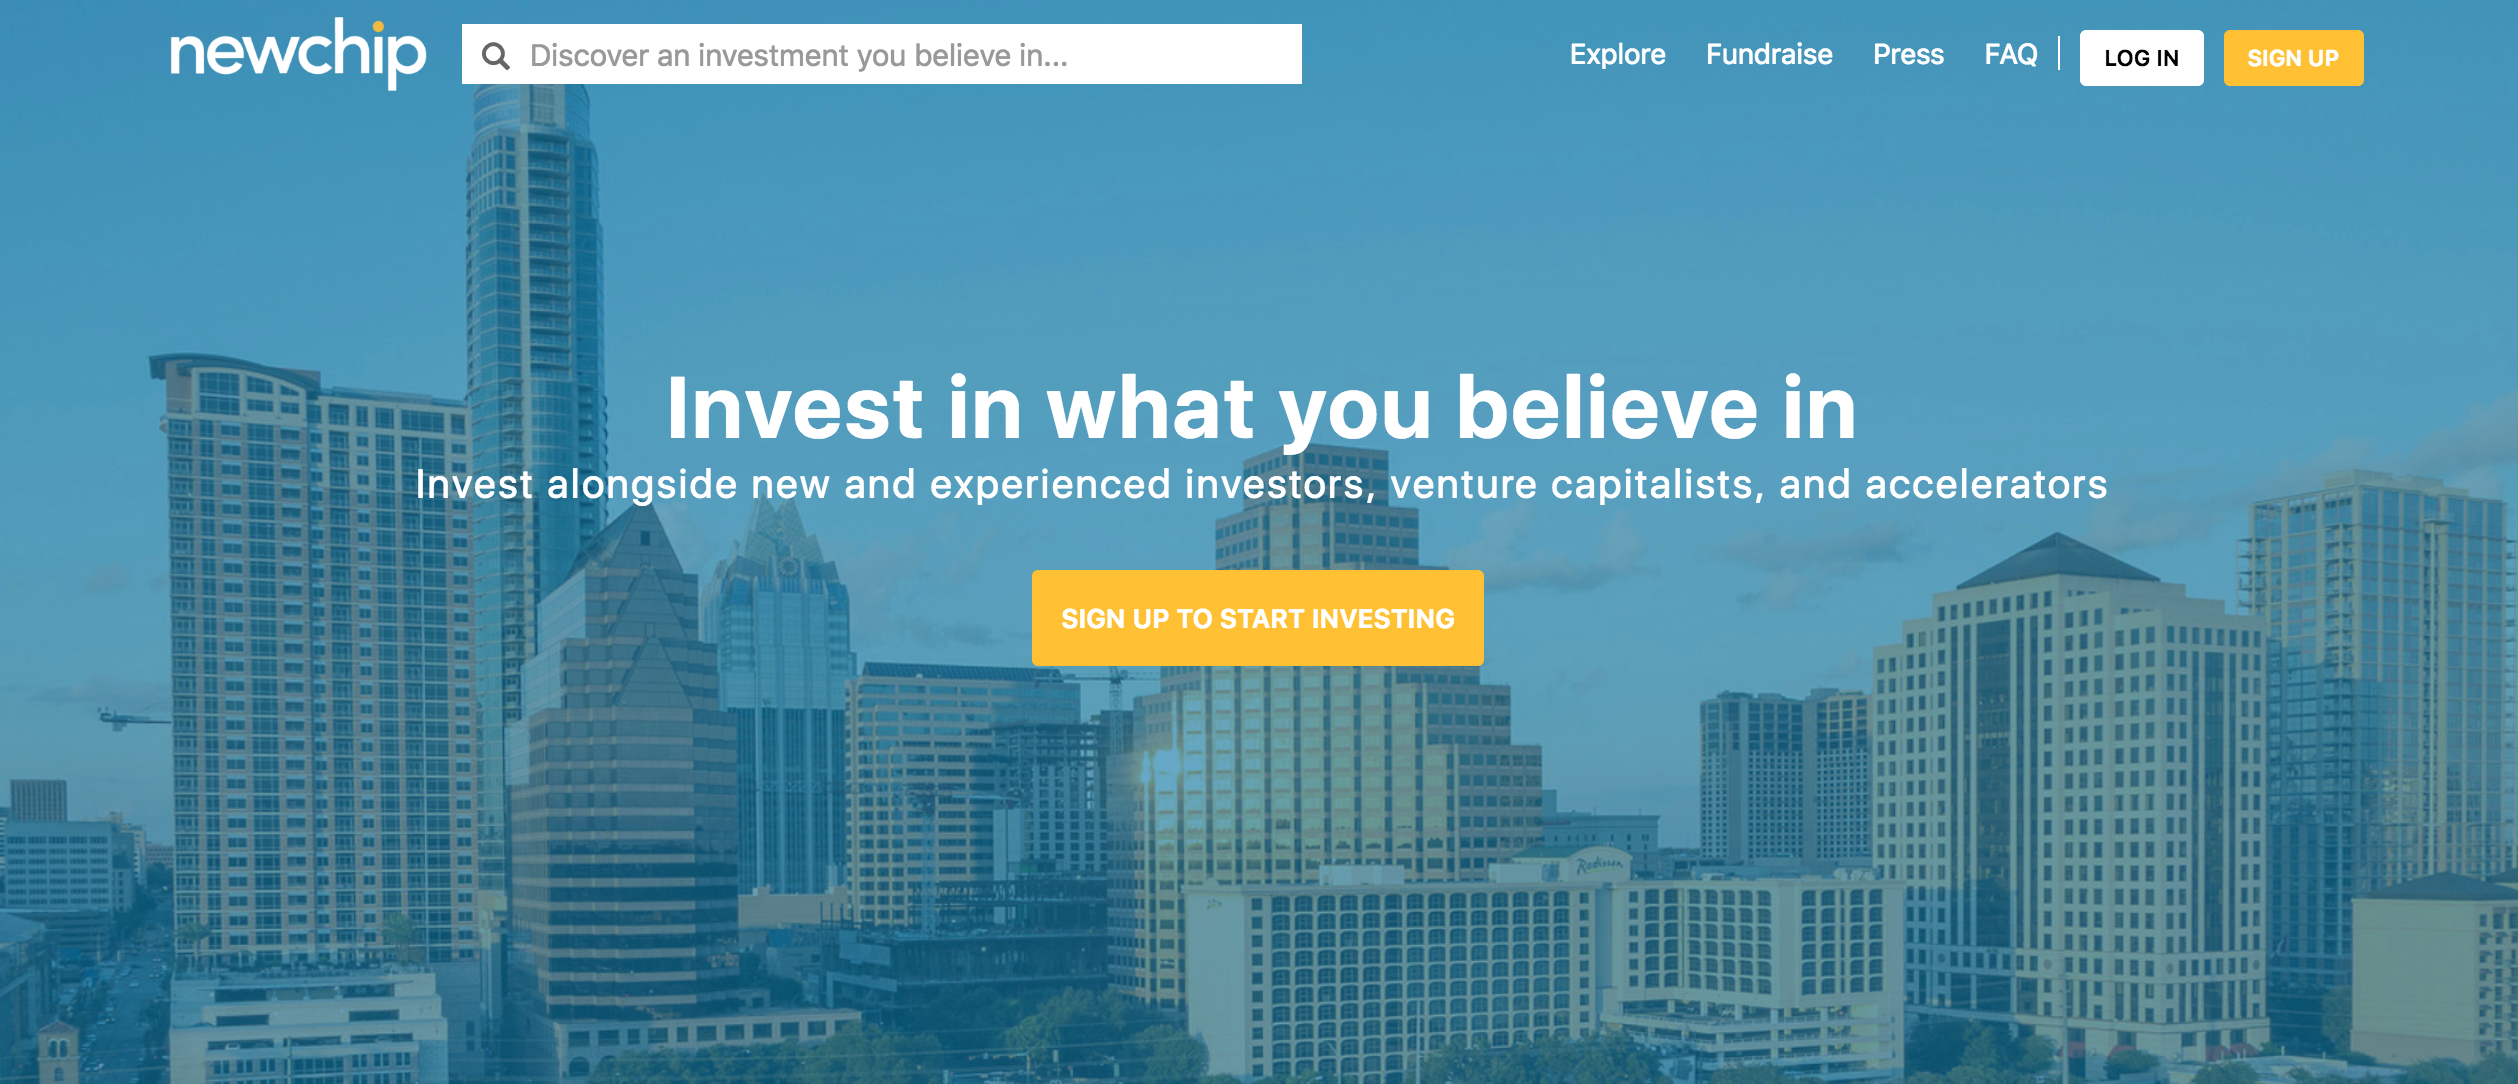 Newchip Lands $2 Million in Seed Funding